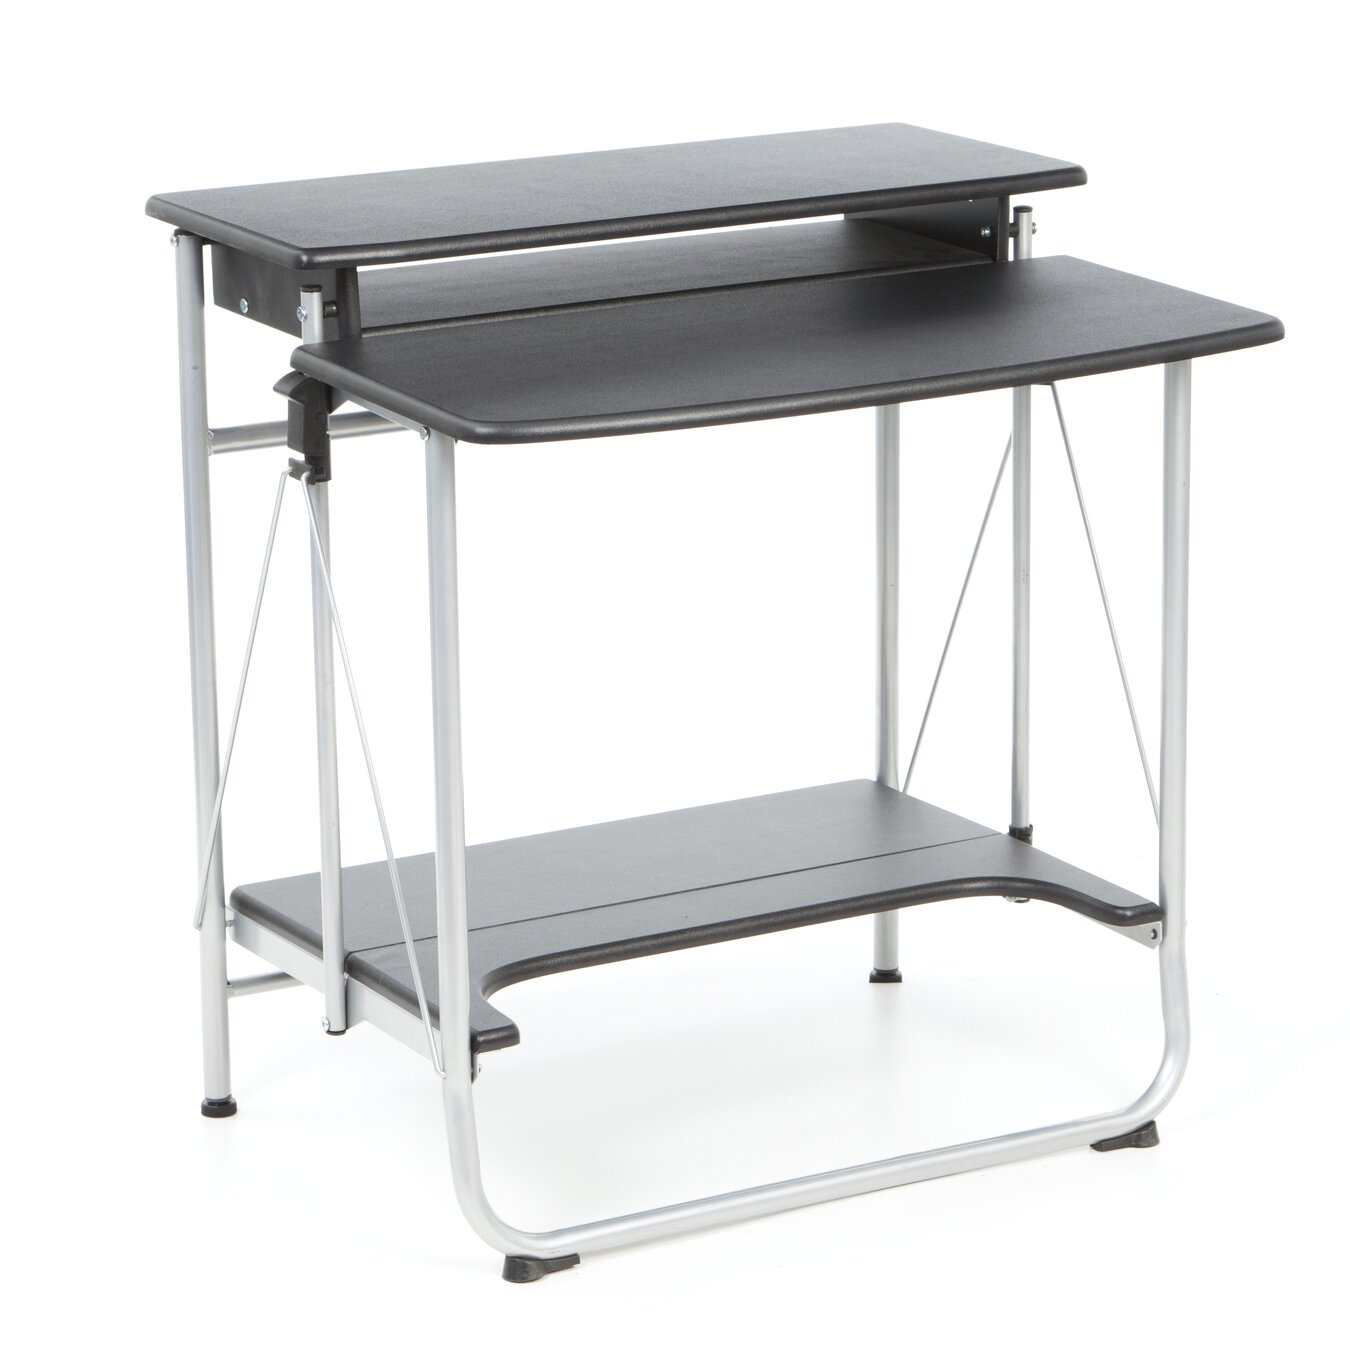 Comfort Products Freeley Folding Computer Desk & Reviews. Kitchen Island With Pull Out Table. Lift Chair Table. Desk Room Divider. Desk Set. Amazon White Desk. Standing Desk Pad. Cherry Nightstands With Drawers. Multiple Monitor Computer Desk